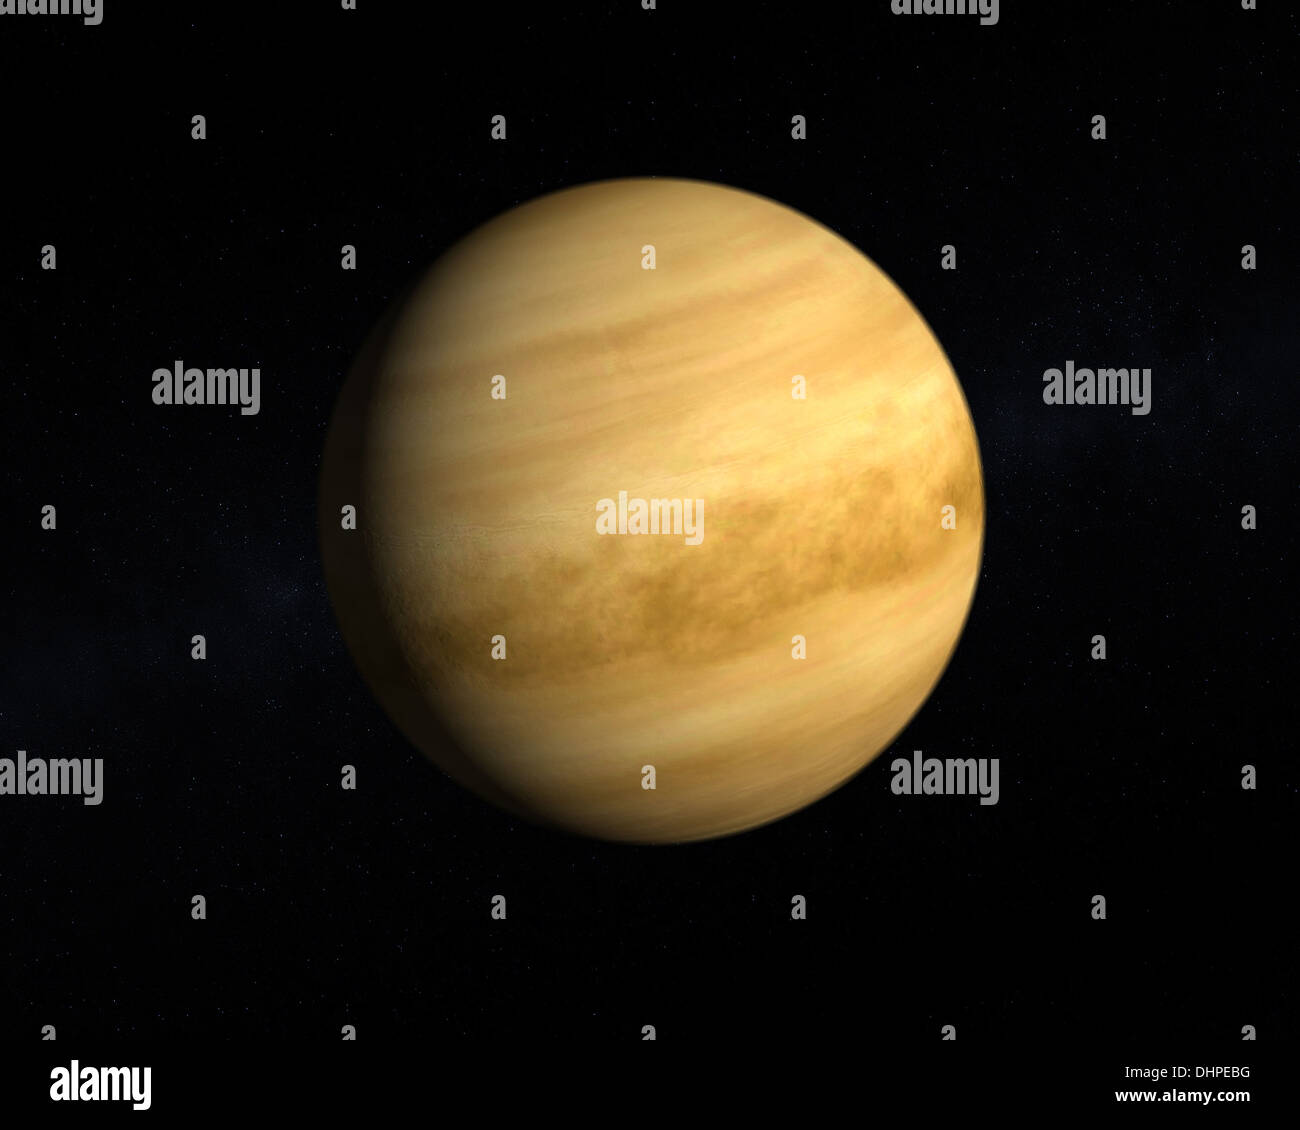 A rendering of the Planet Venus on a starry background. - Stock Image